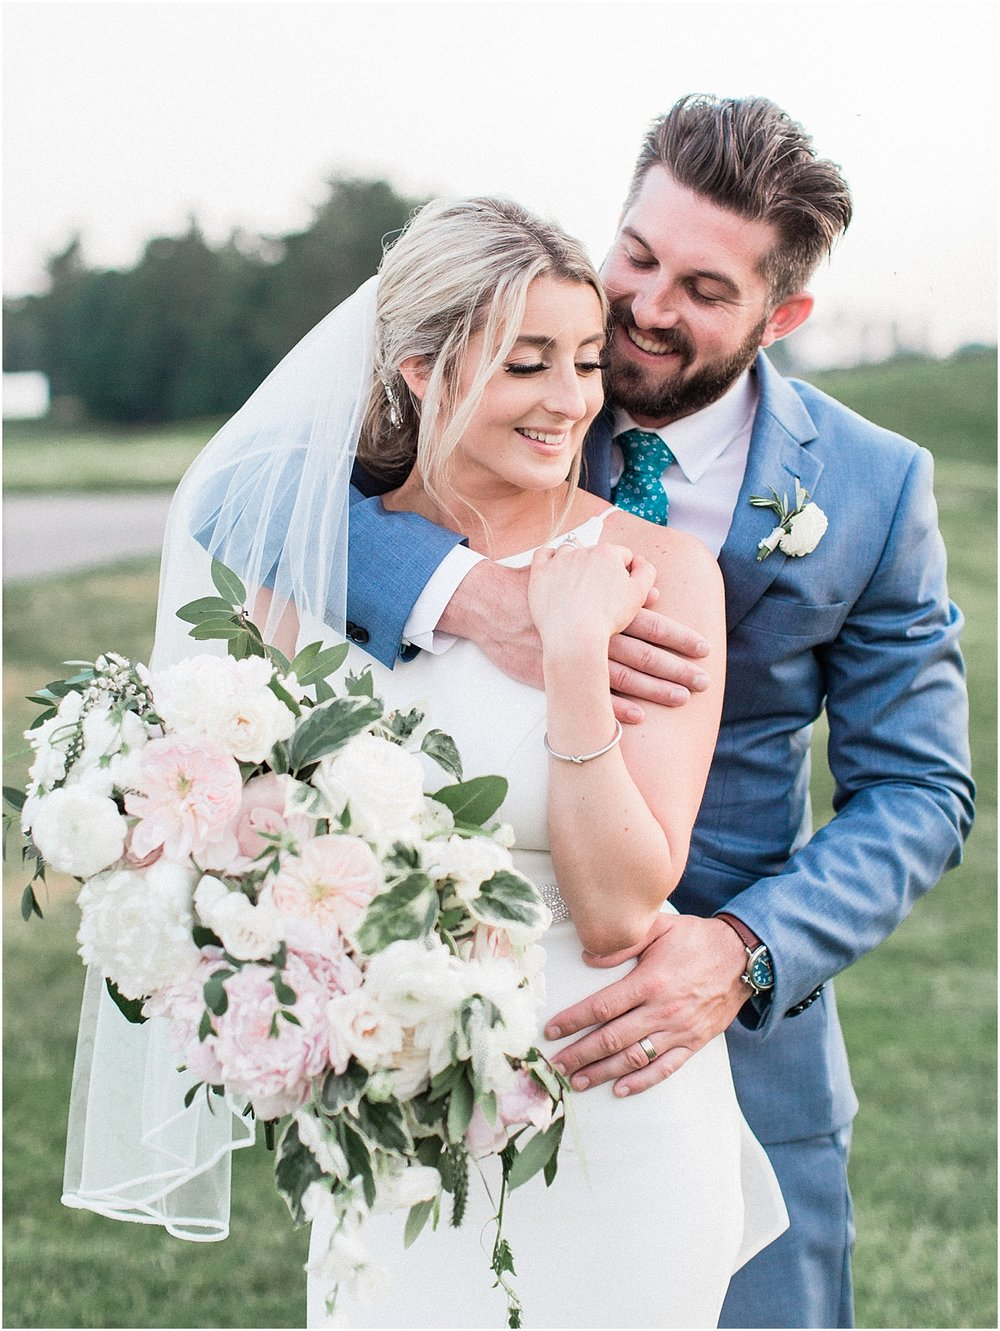 lindsey_paul_indian_pond_country_club_wild_dahlia_brewster_gardens_plymouth_cape_cod_boston_wedding_photographer_meredith_jane_photography_photo_0406.jpg